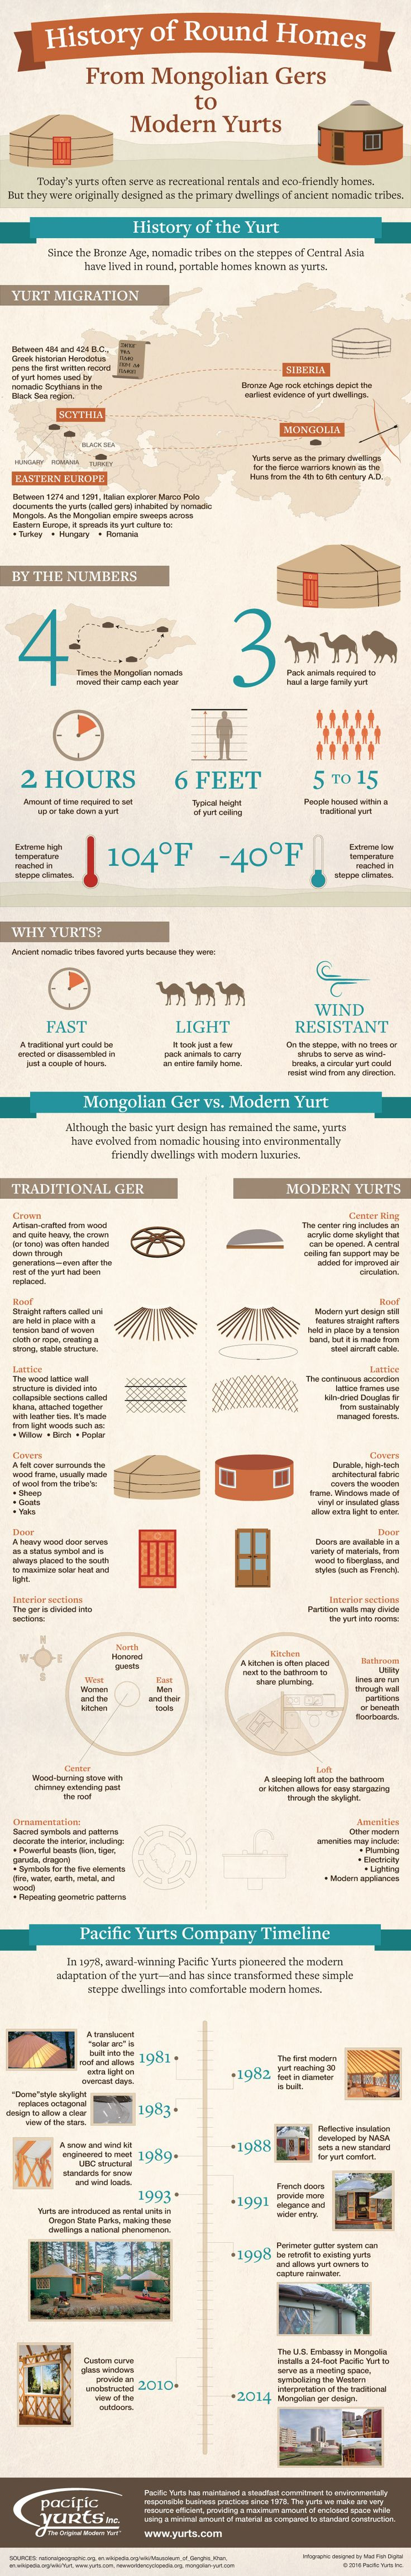 History of Round Homes: From Mongolian Gers to Modern Yurts [Infographic]